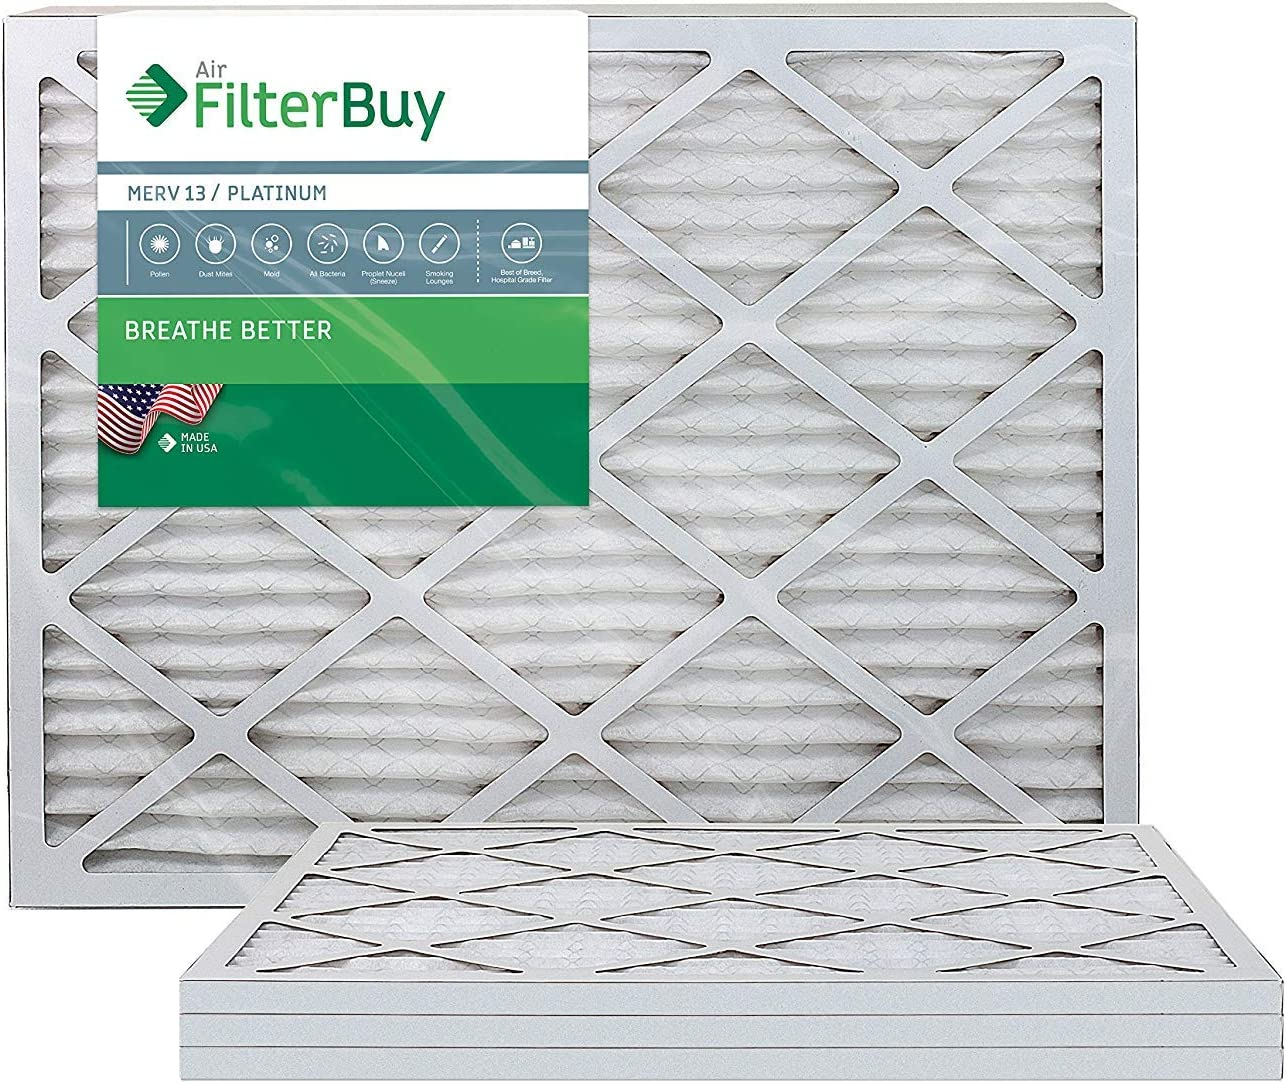 FilterBuy 20x25x1 MERV 13 Pleated AC Furnace Air Filter, (Pack of 4 Filters), 20x25x1 – Platinum